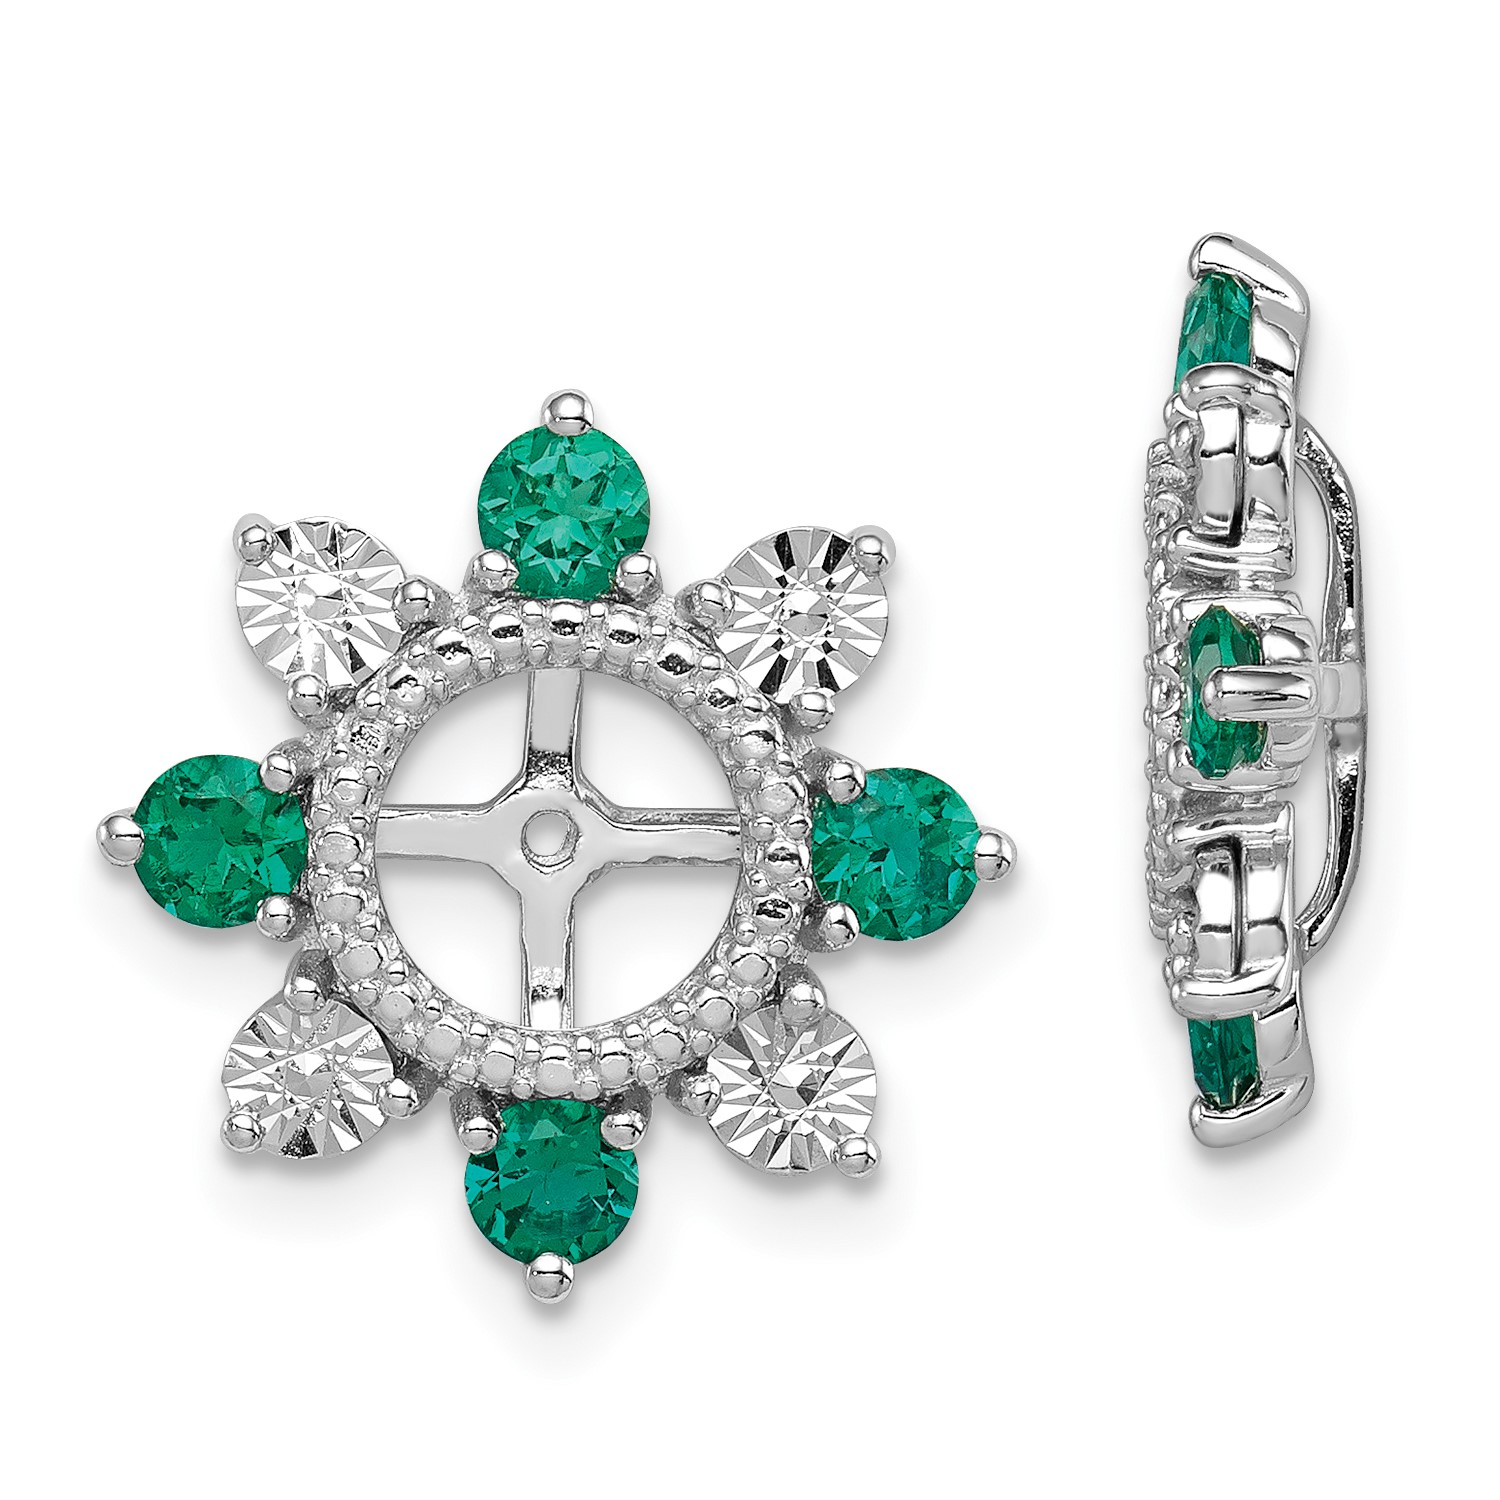 Image Is Loading Sterling Silver W Rhodium Plated Created Emerald Earring